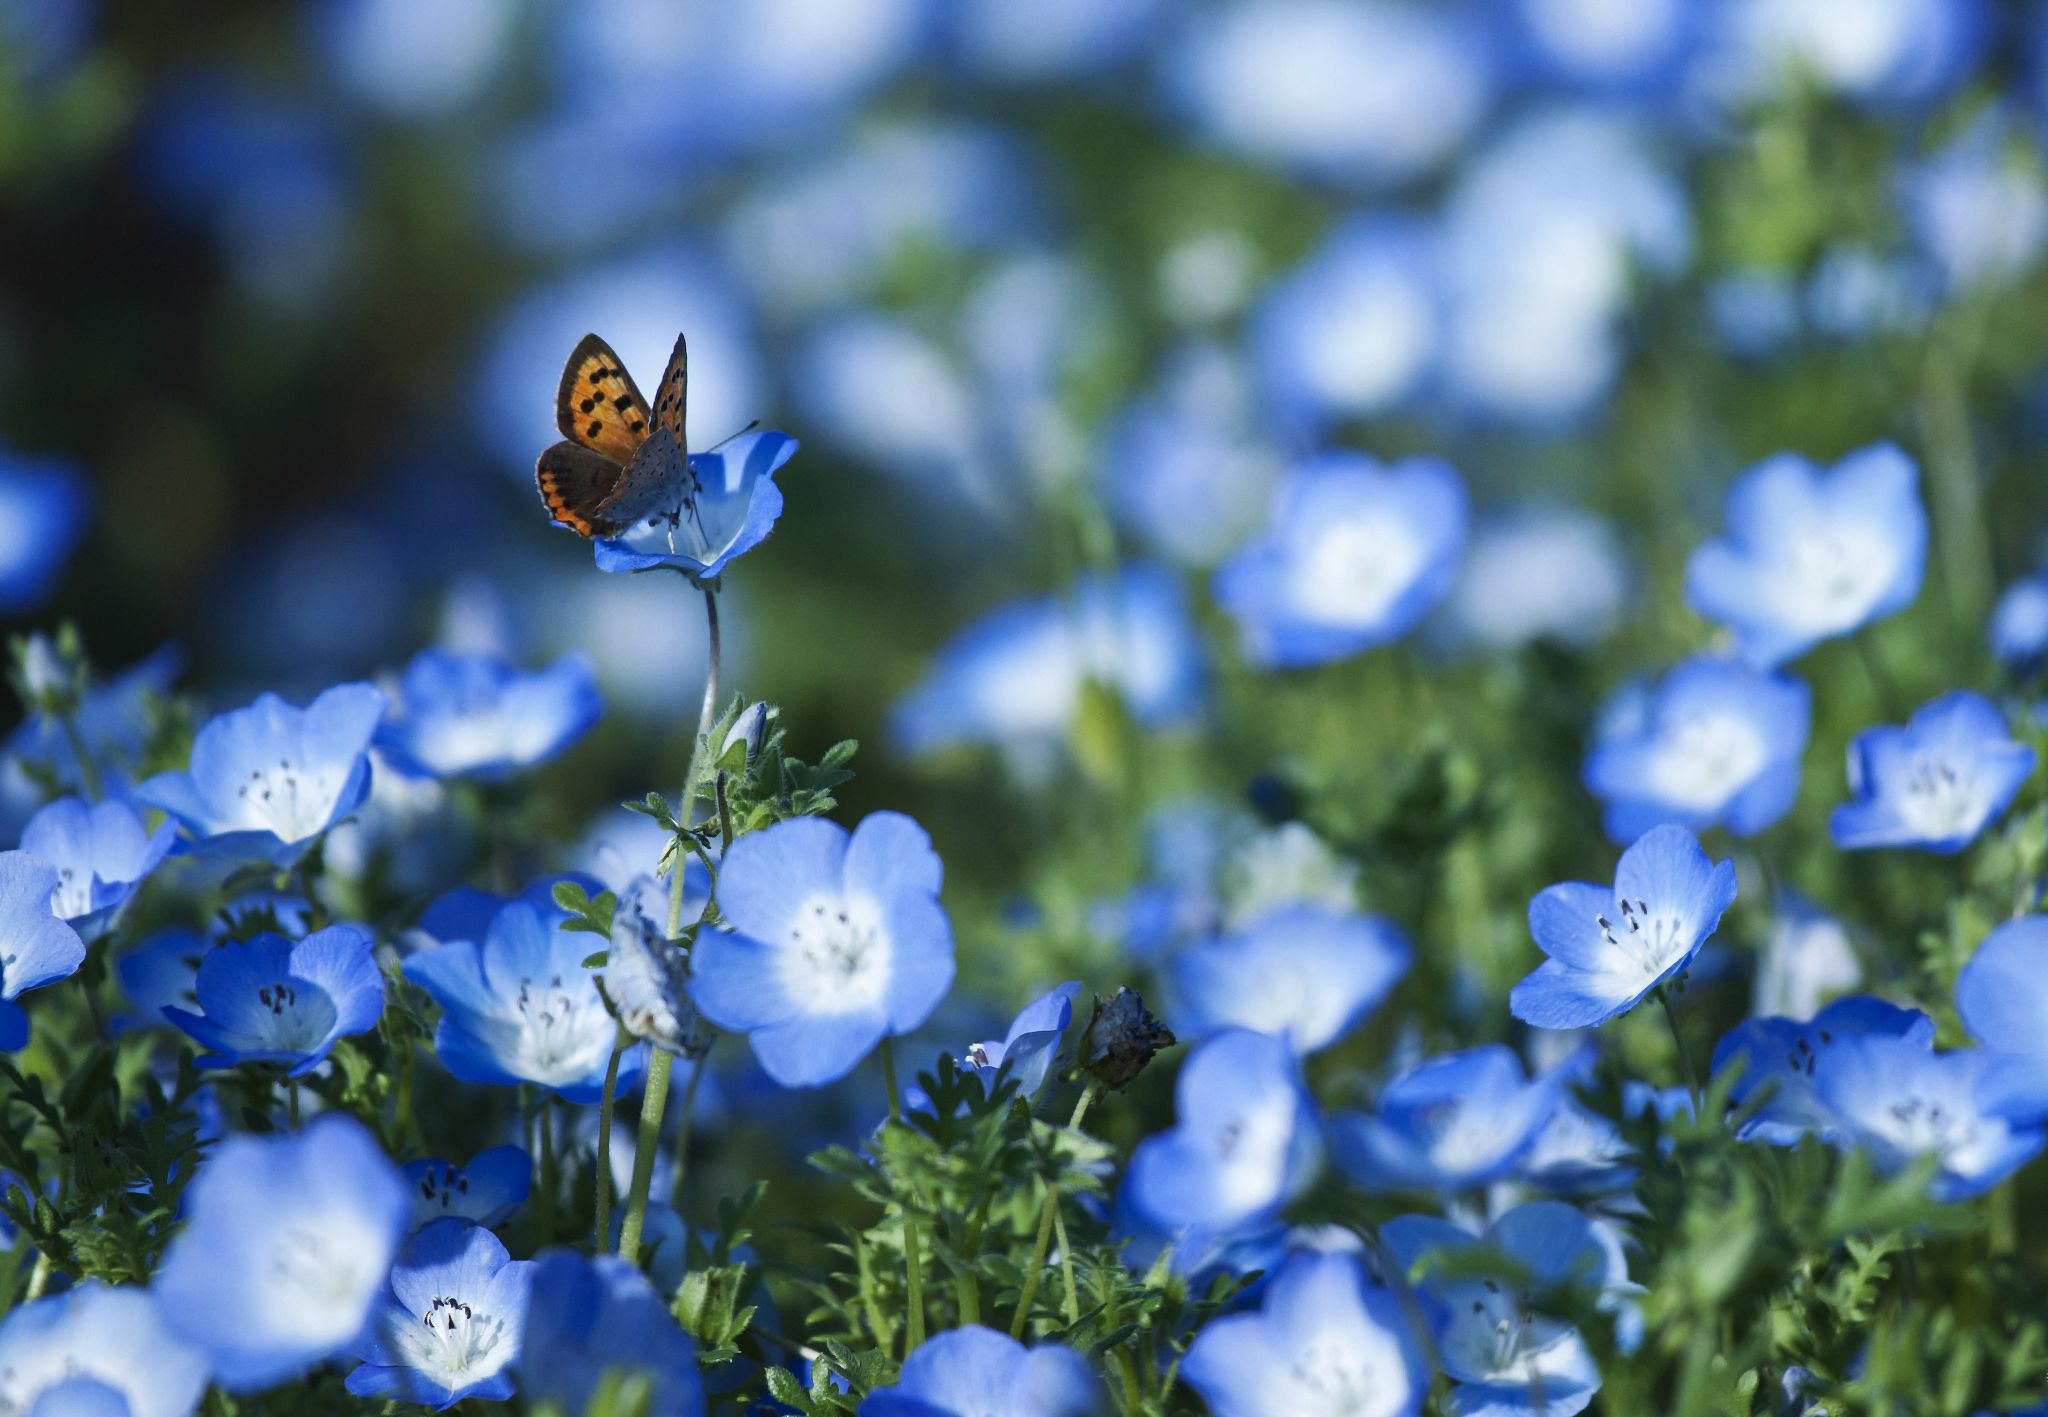 Wonderful Wallpaper Butterfly Spring - 1e136cc50a674bbeab1bc435ec138162  You Should Have_689581.jpg